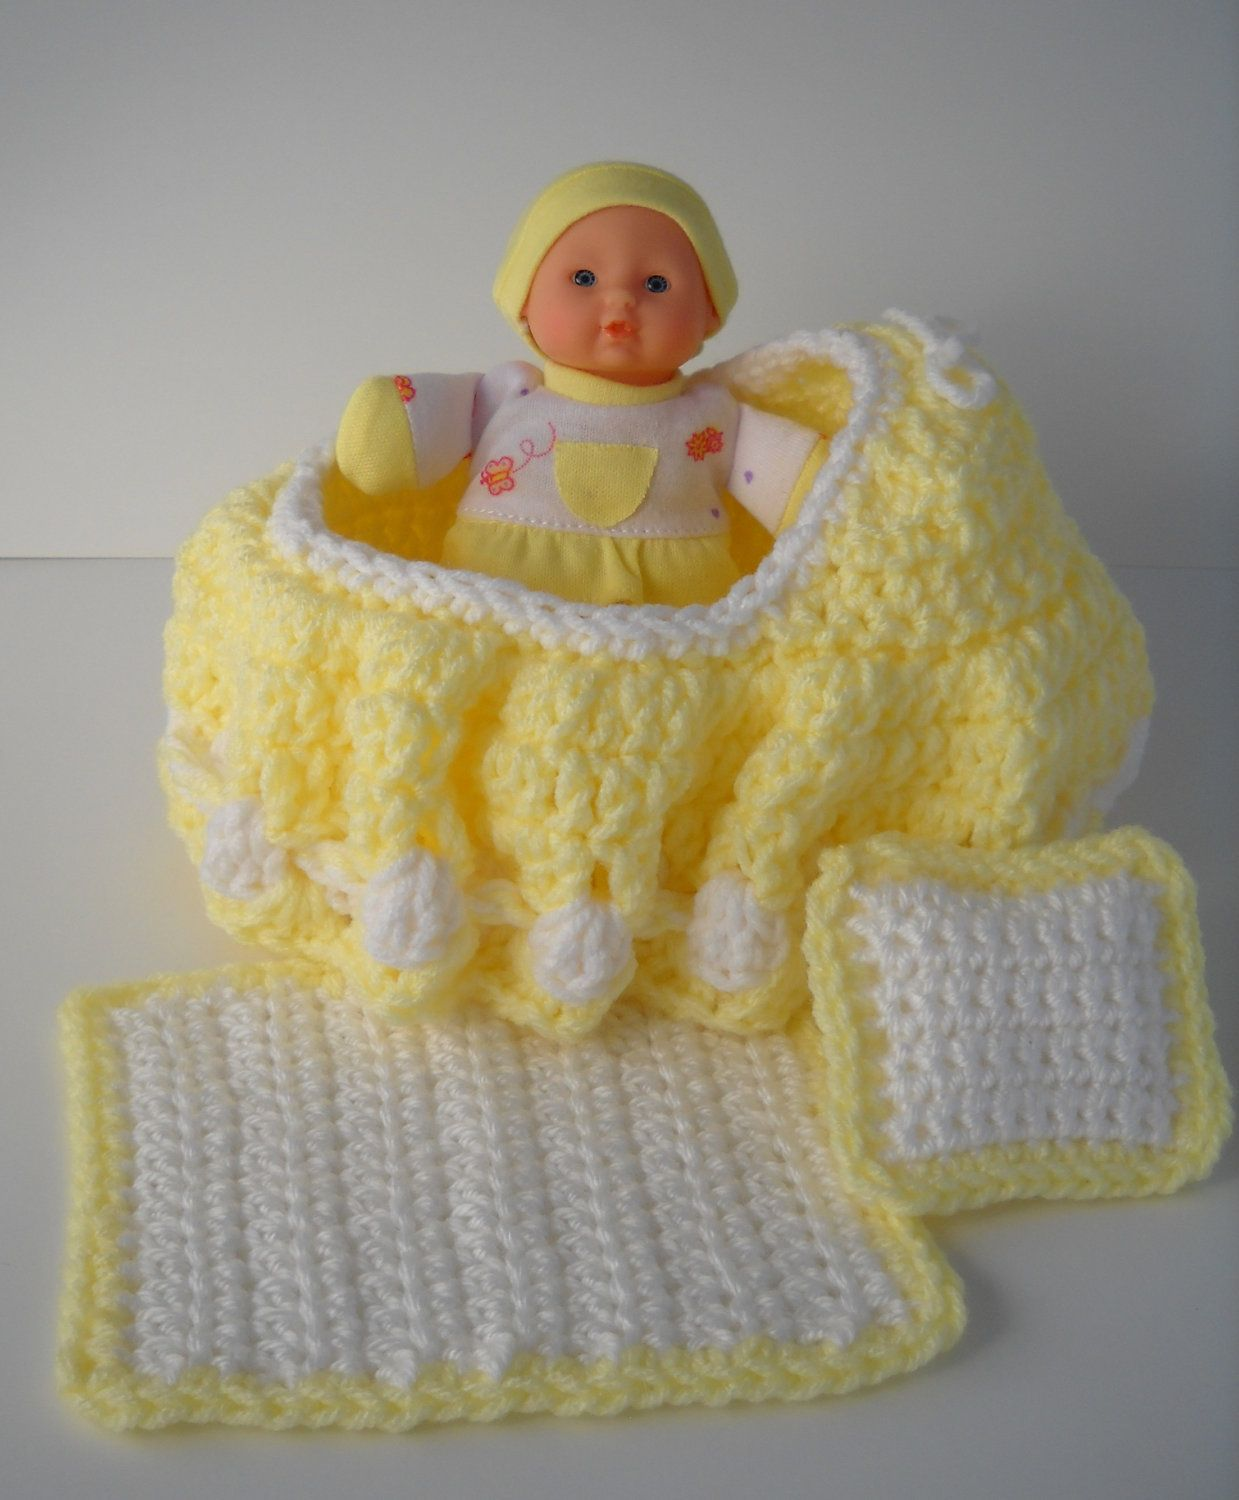 Etsy $15.00 Yellow Cradle Purse, Baby doll, Blanket and Pillow ...